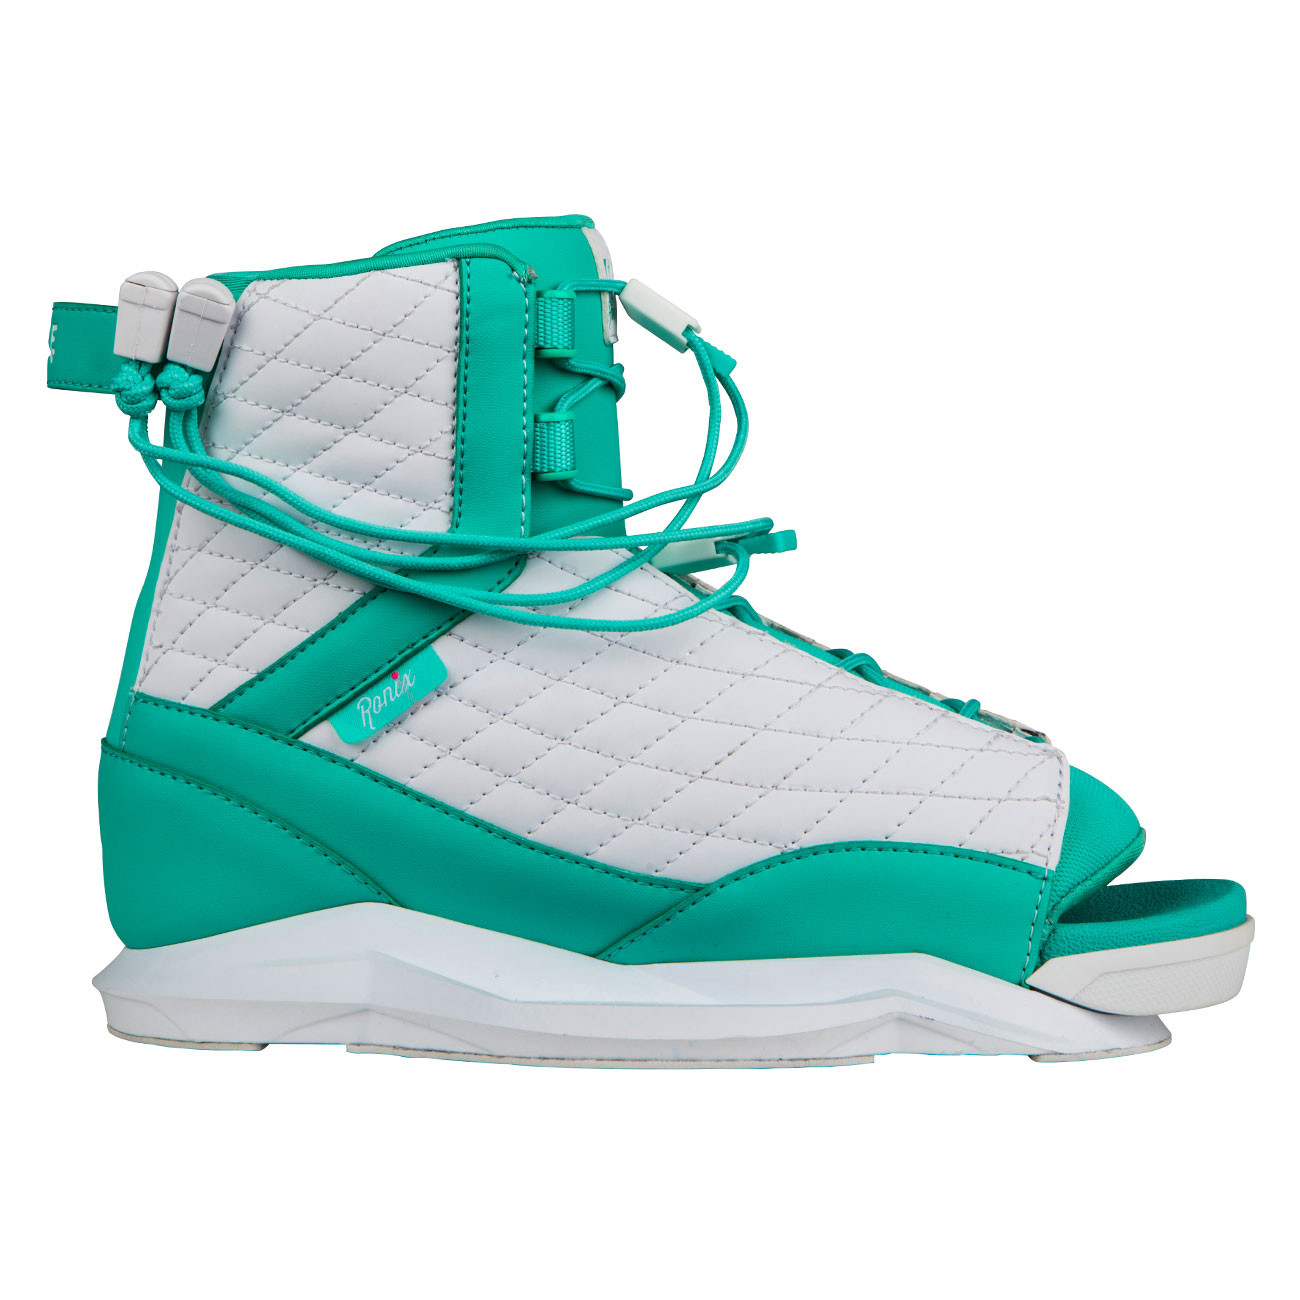 Binding Ronix Luxe White/turquoise